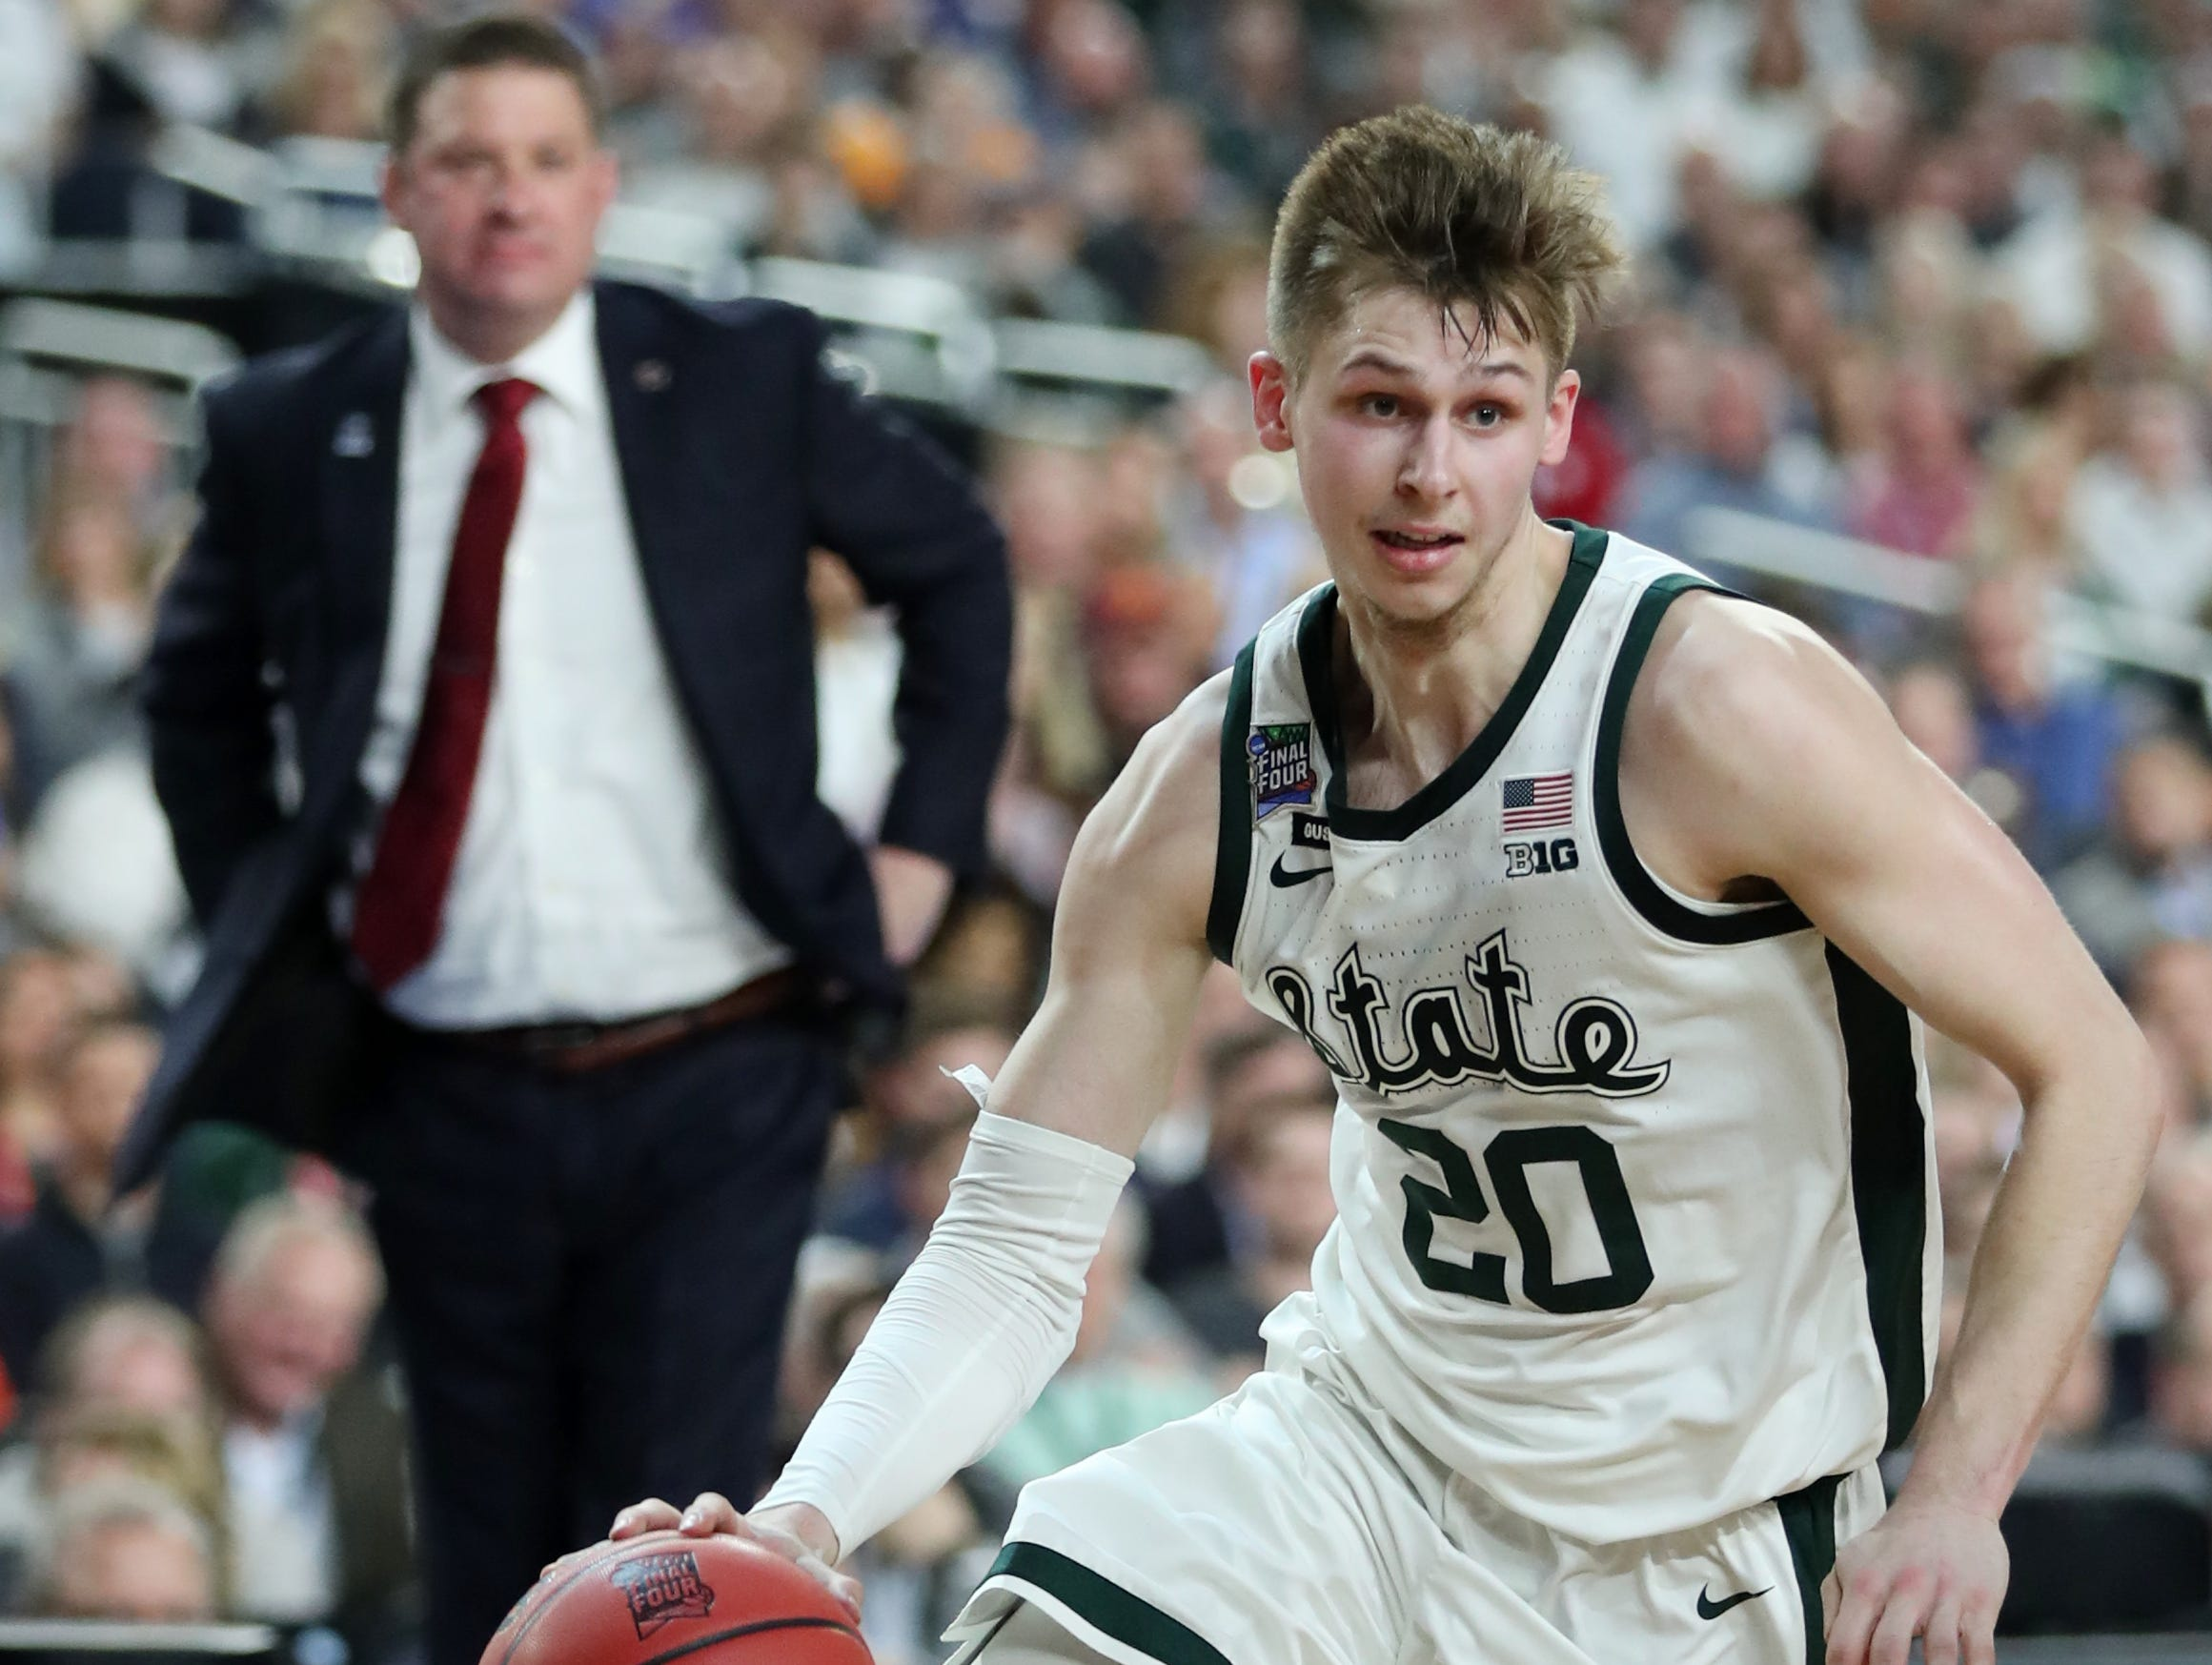 Michigan State guard Matt McQuaid (20) moves the ball down the court in the first half of the Spartan's Final Four game against Texas Tech at U.S. Bank Stadium in Minneapolis, Minnesota on Saturday, April 06, 2019.